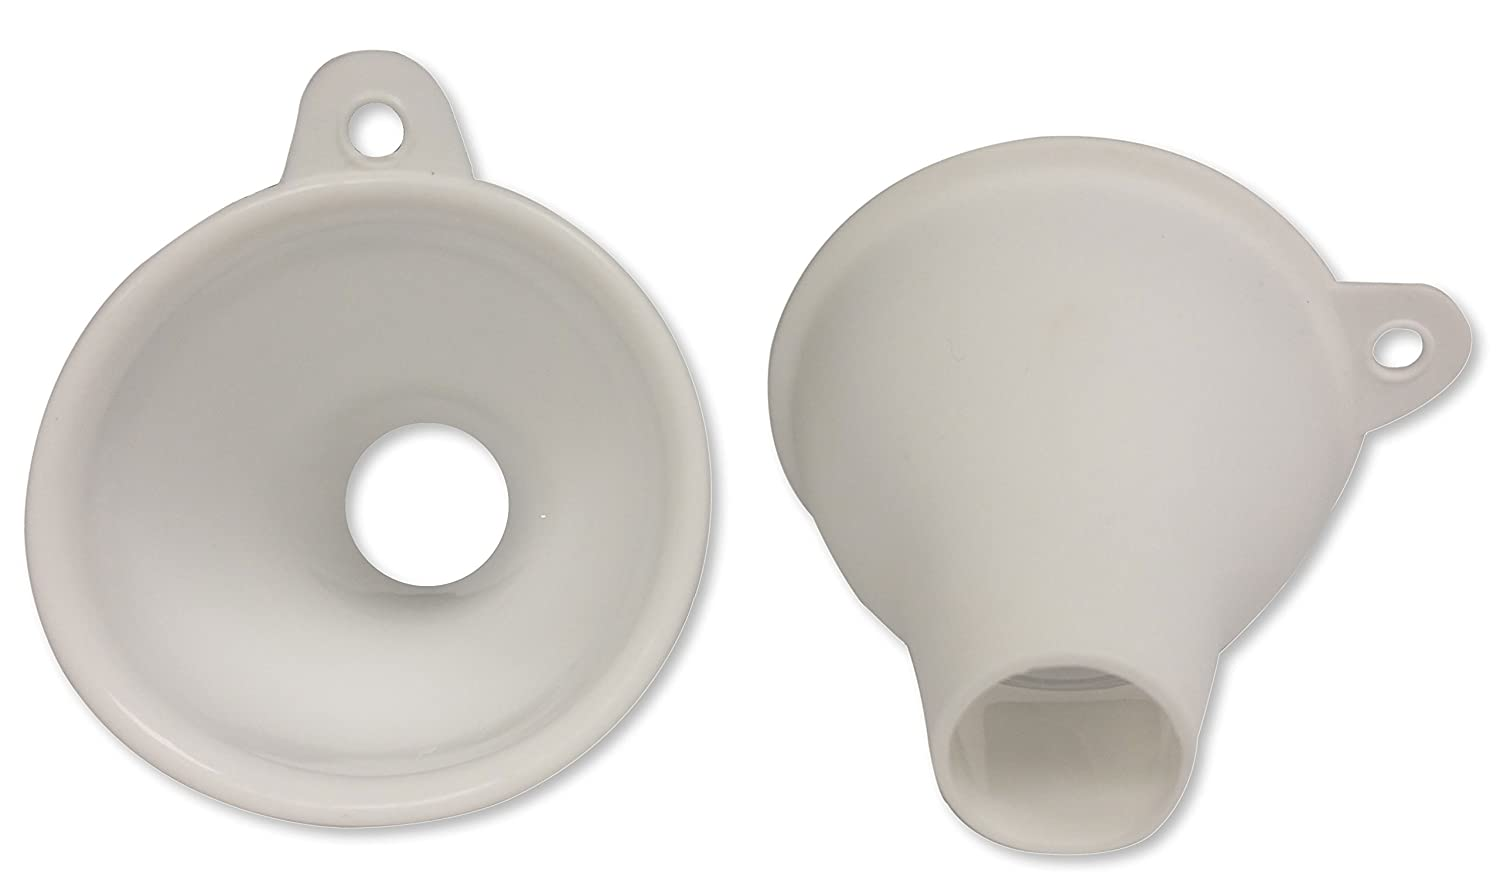 Silicone Mini Spice Funnel No Clog Large Bottom Opening for Fast Pouring of Powdered Leafy and Whole Spices by SpiceLuxe